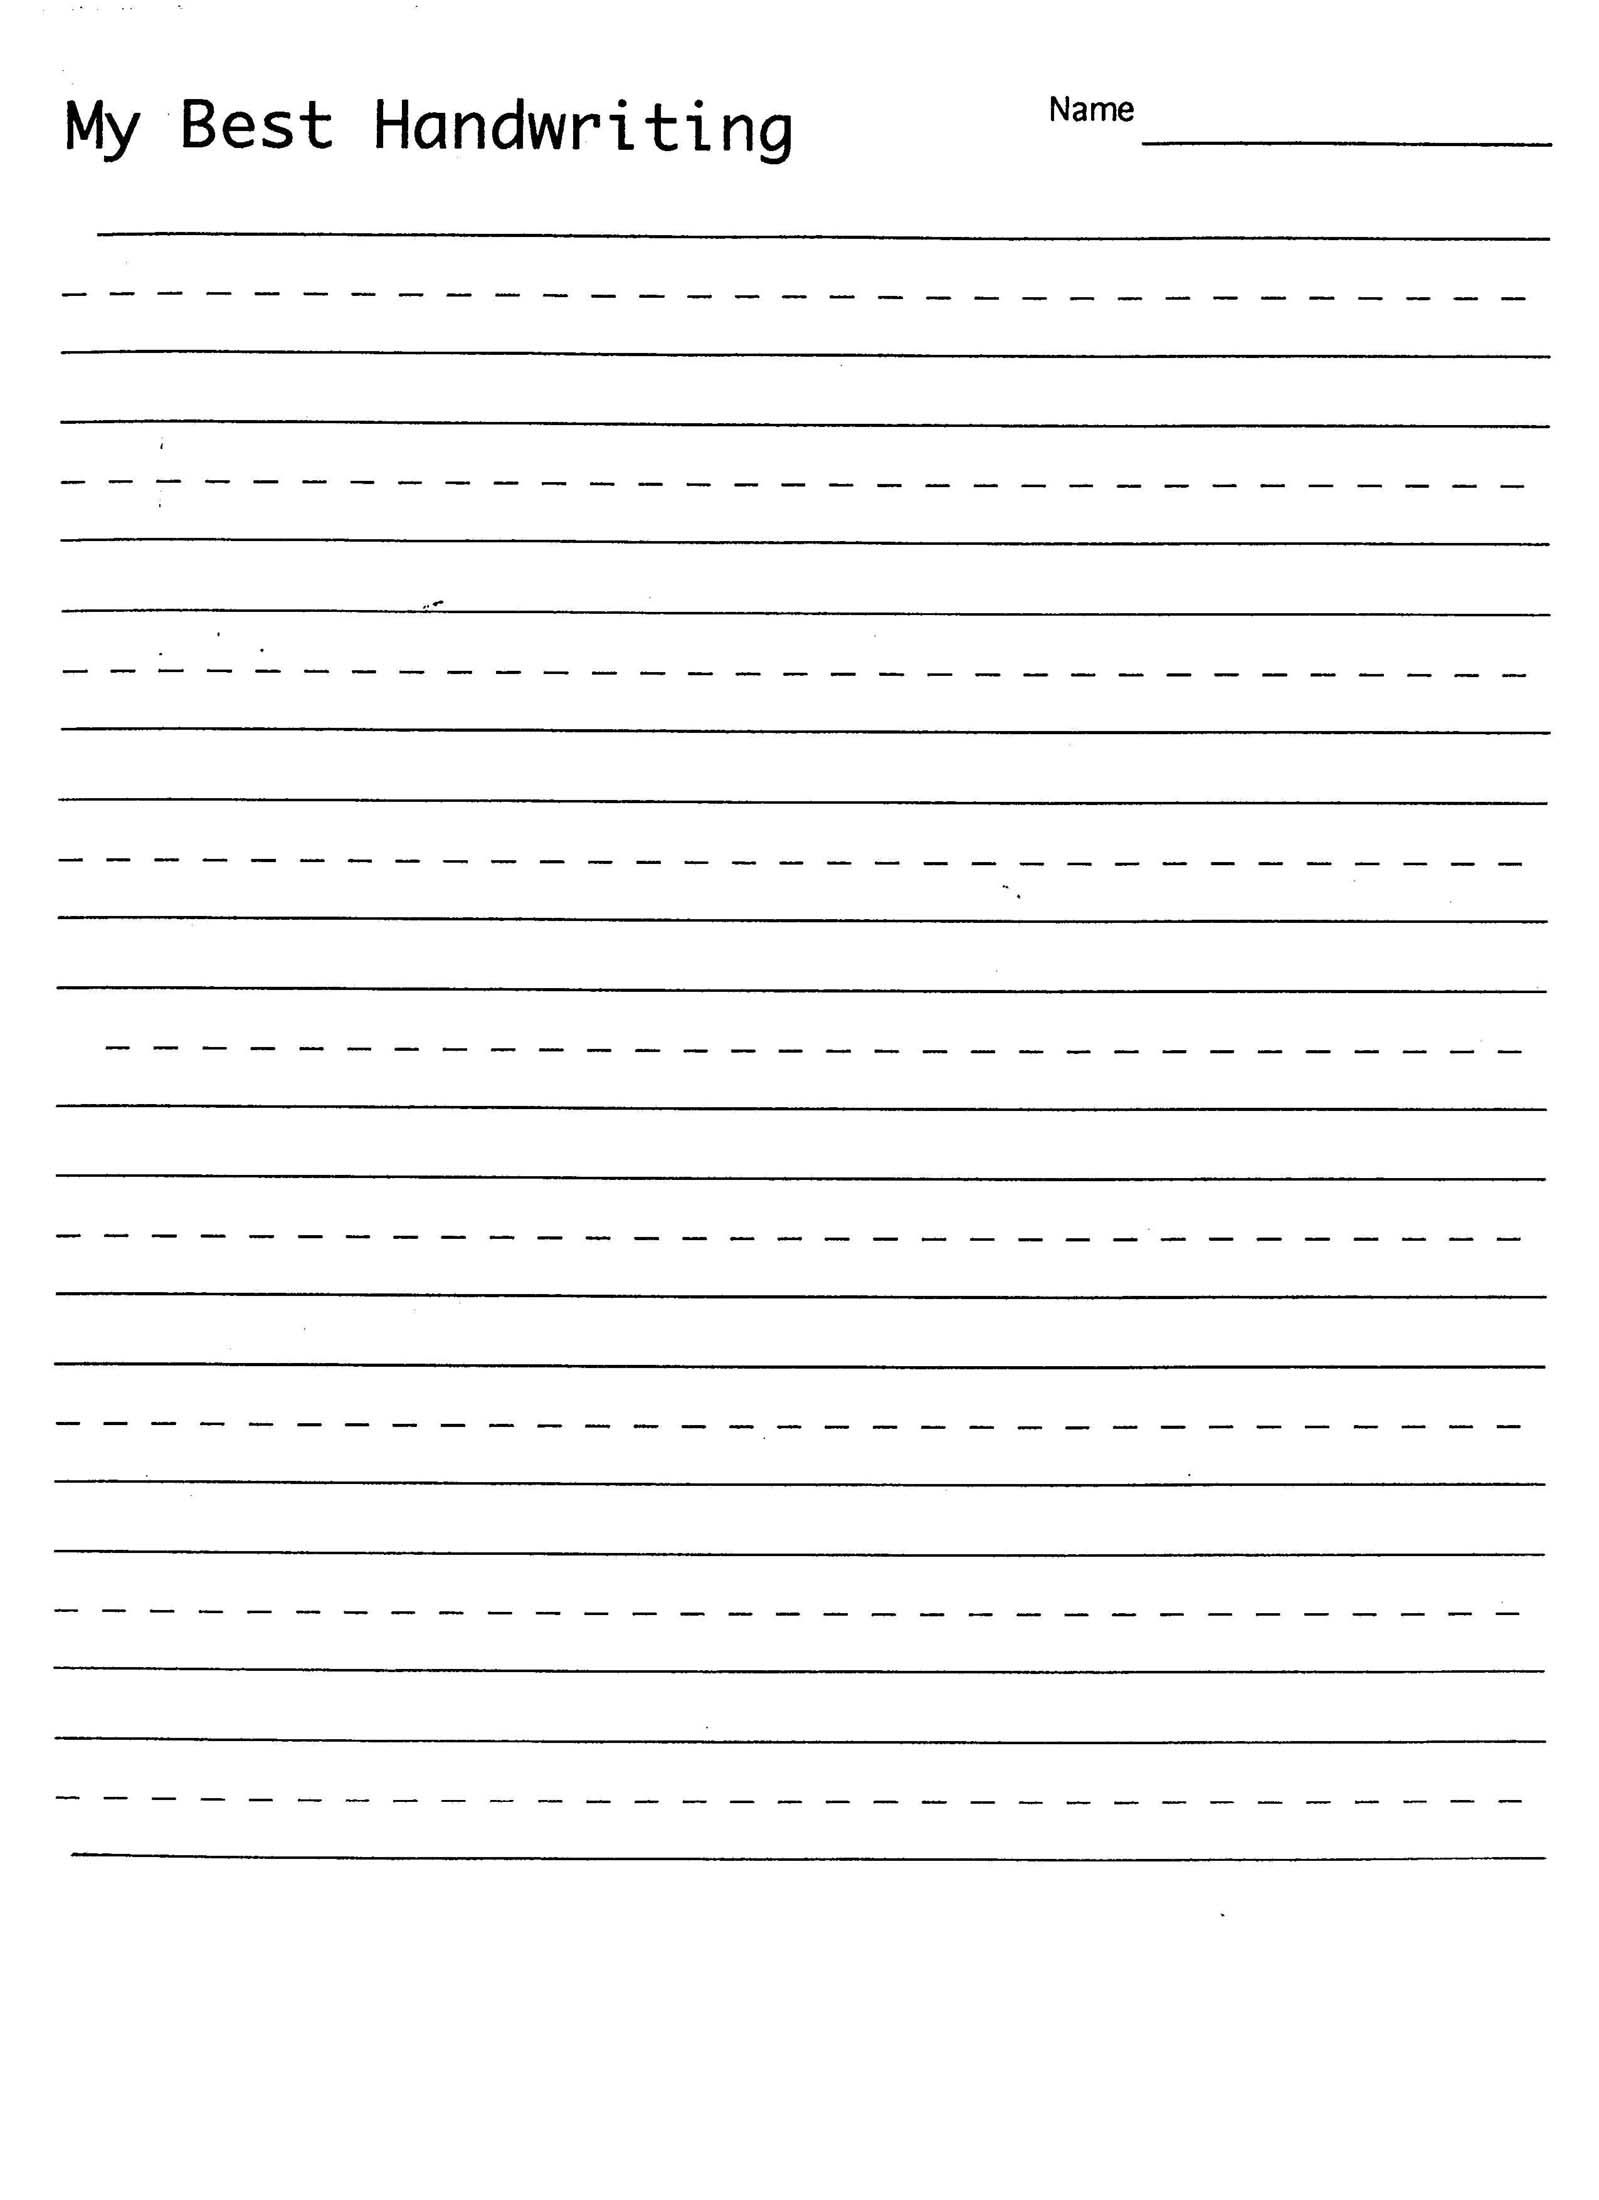 Handwriting Practice Sheet Handwriting practice sheets